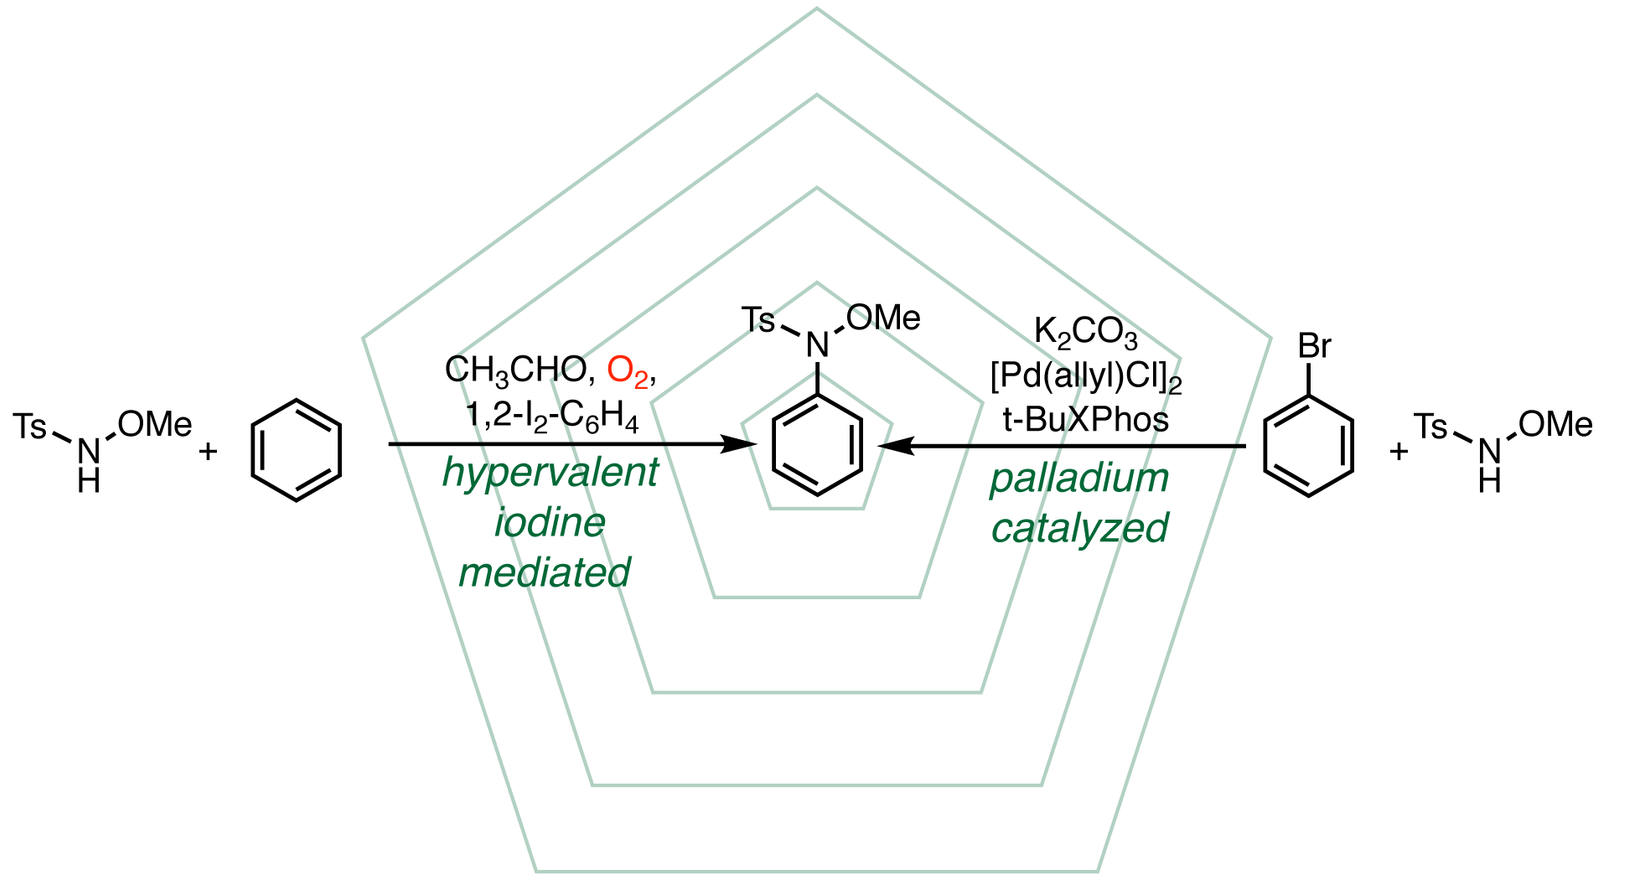 Exploring Green Chemistry with Aerobic Hypervalent Iodine Catalysis